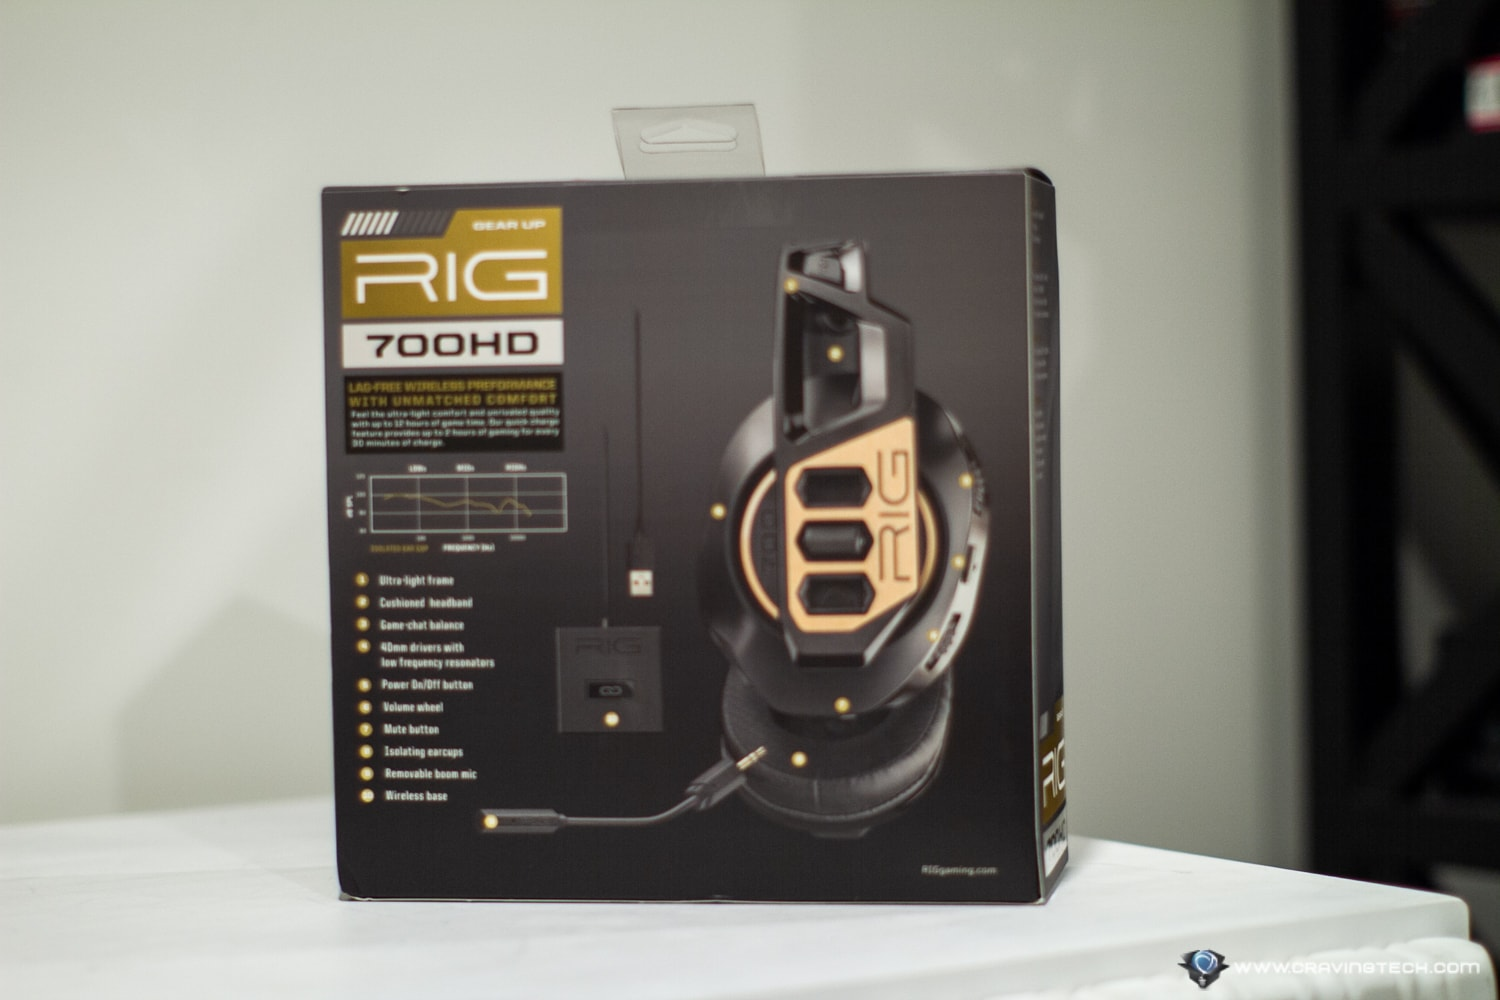 RIG 700HD Gaming Headset Unboxing